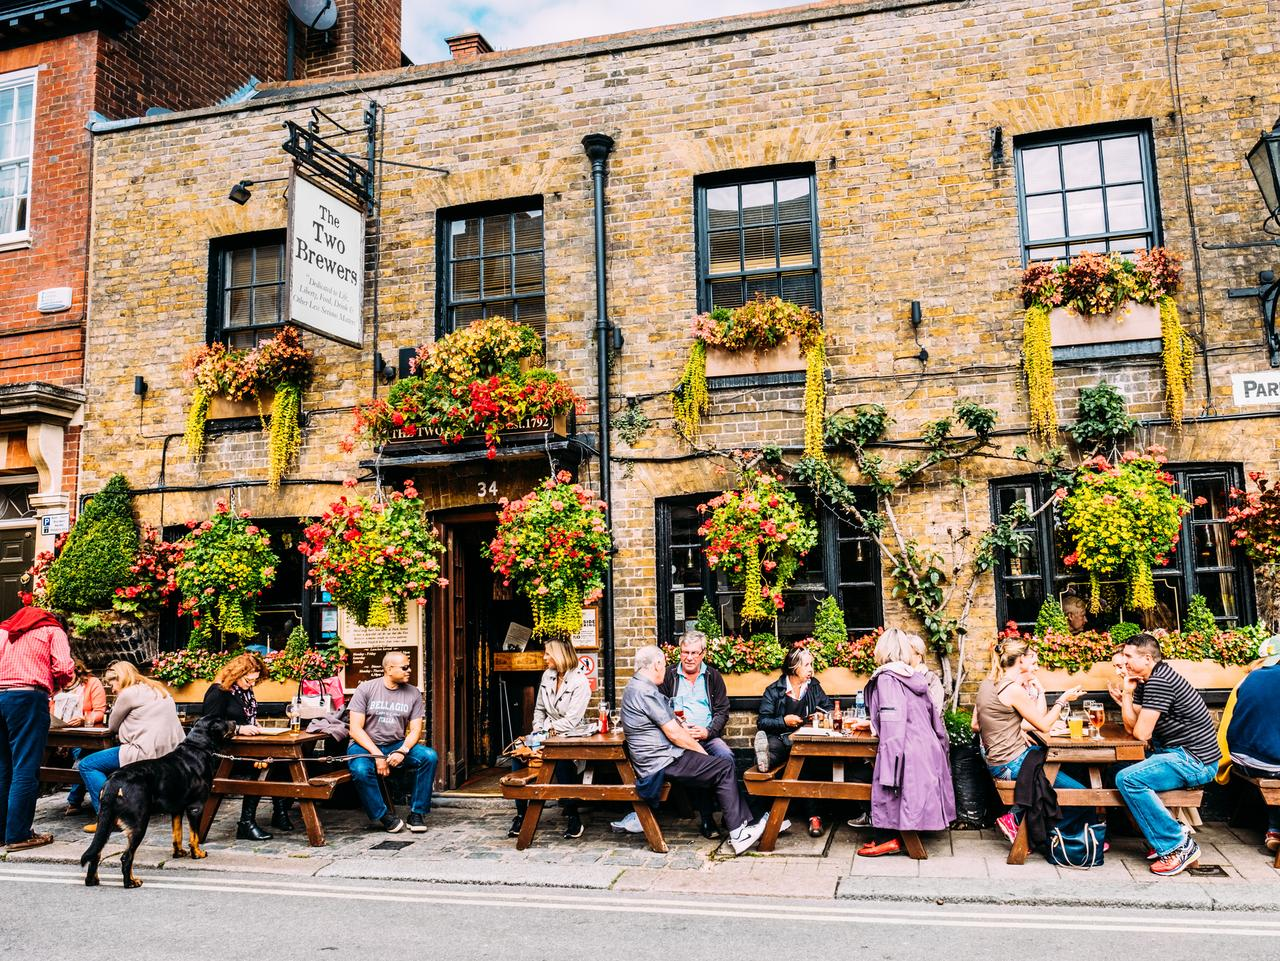 People socialising and sitting outside The Two Brewers public house at Park Street, Windsor, London, England on an overcast autumn day. The pub is located right beside the George IV Gateway at Windsor Castle.